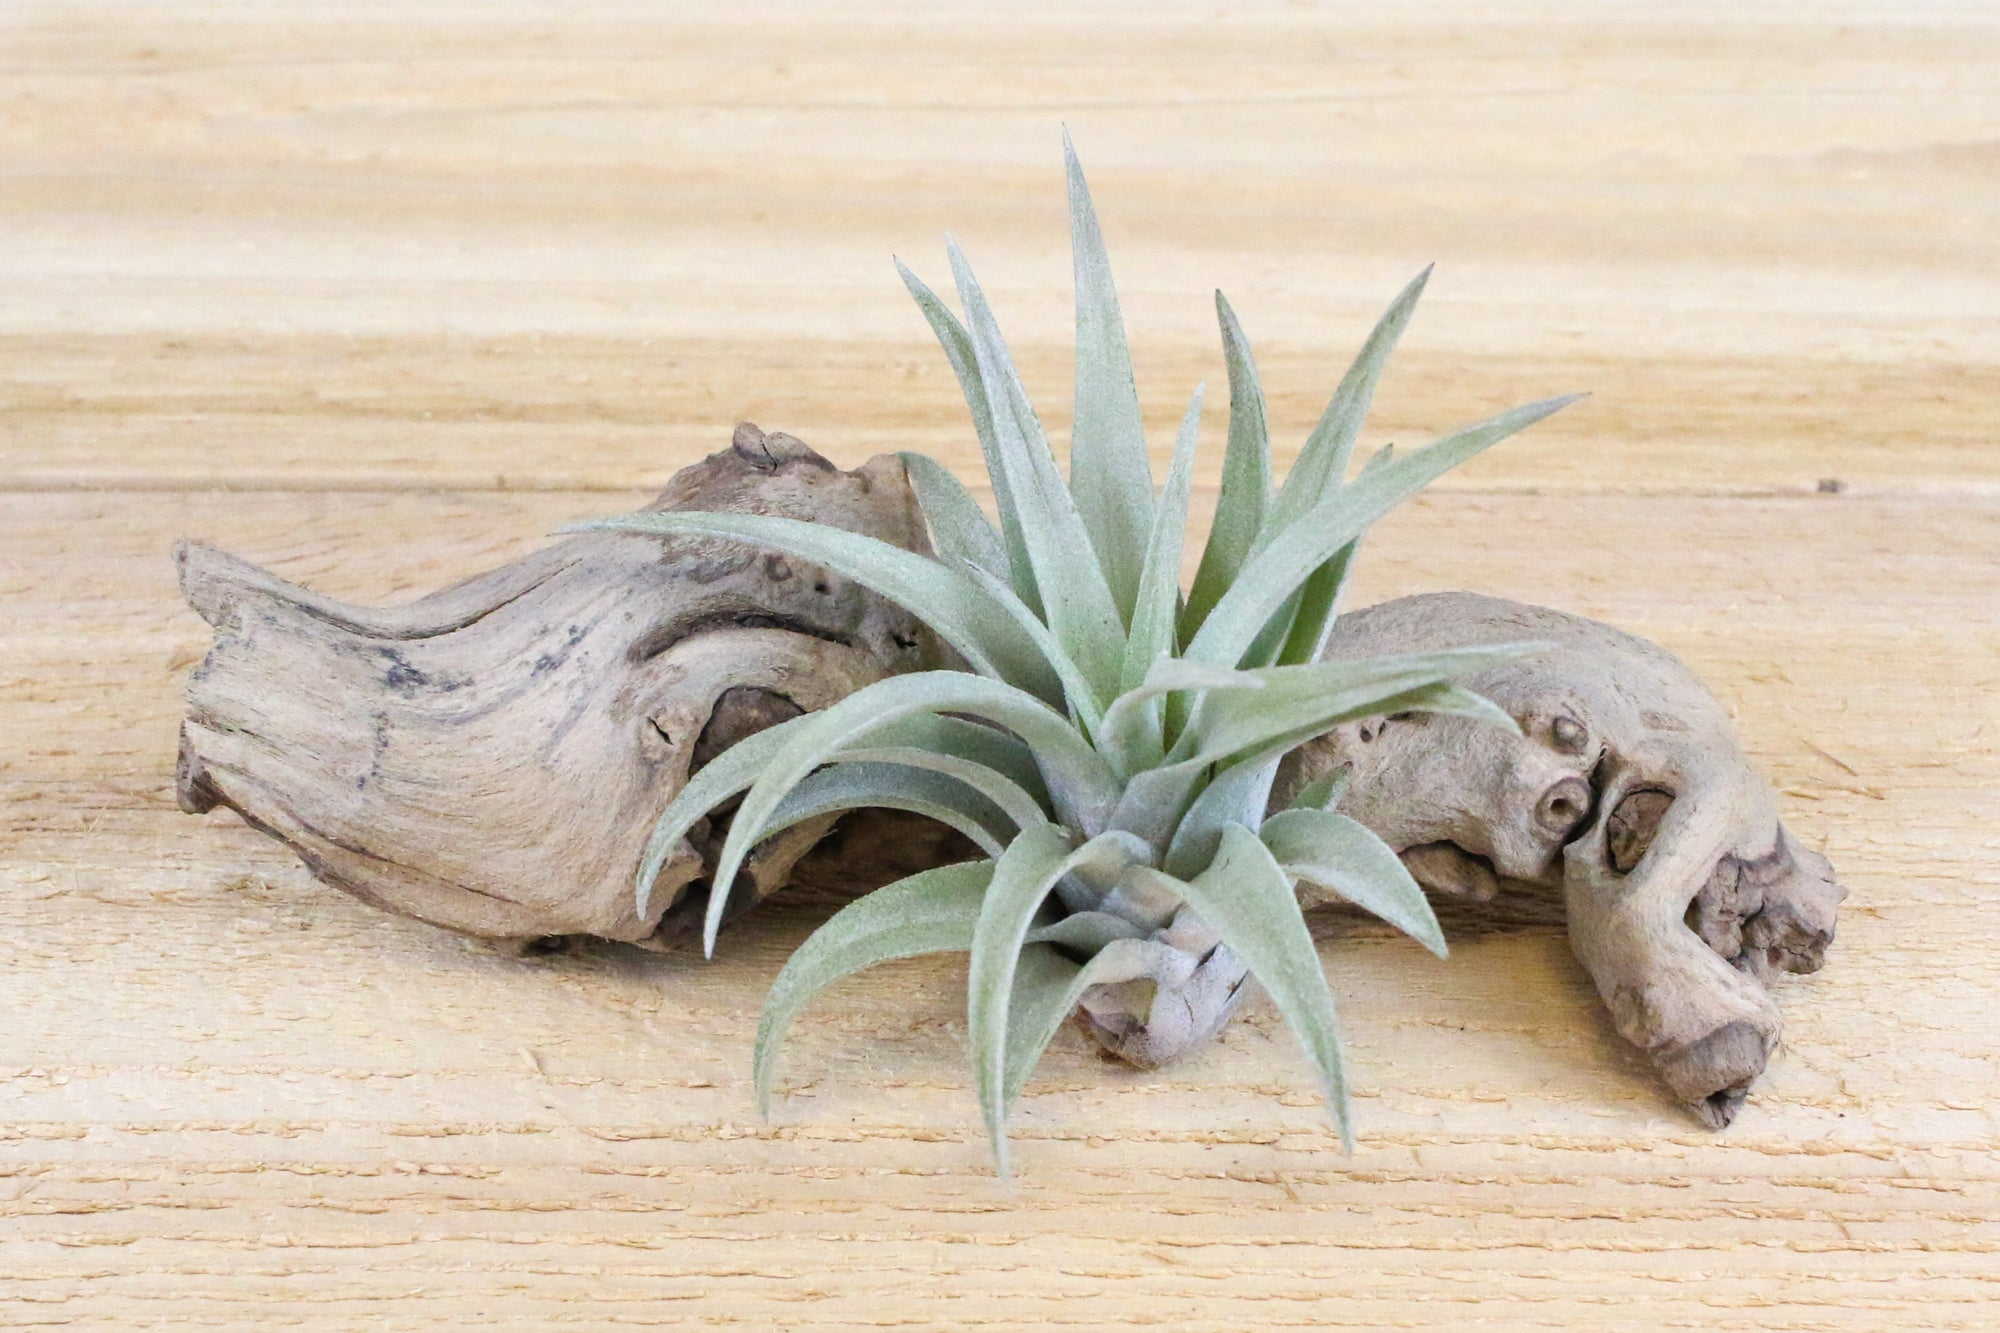 Wholesale: Tillandsia Harrisii 'Himnorum' Air Plants [Min Order 12] from AirPlantShop.com